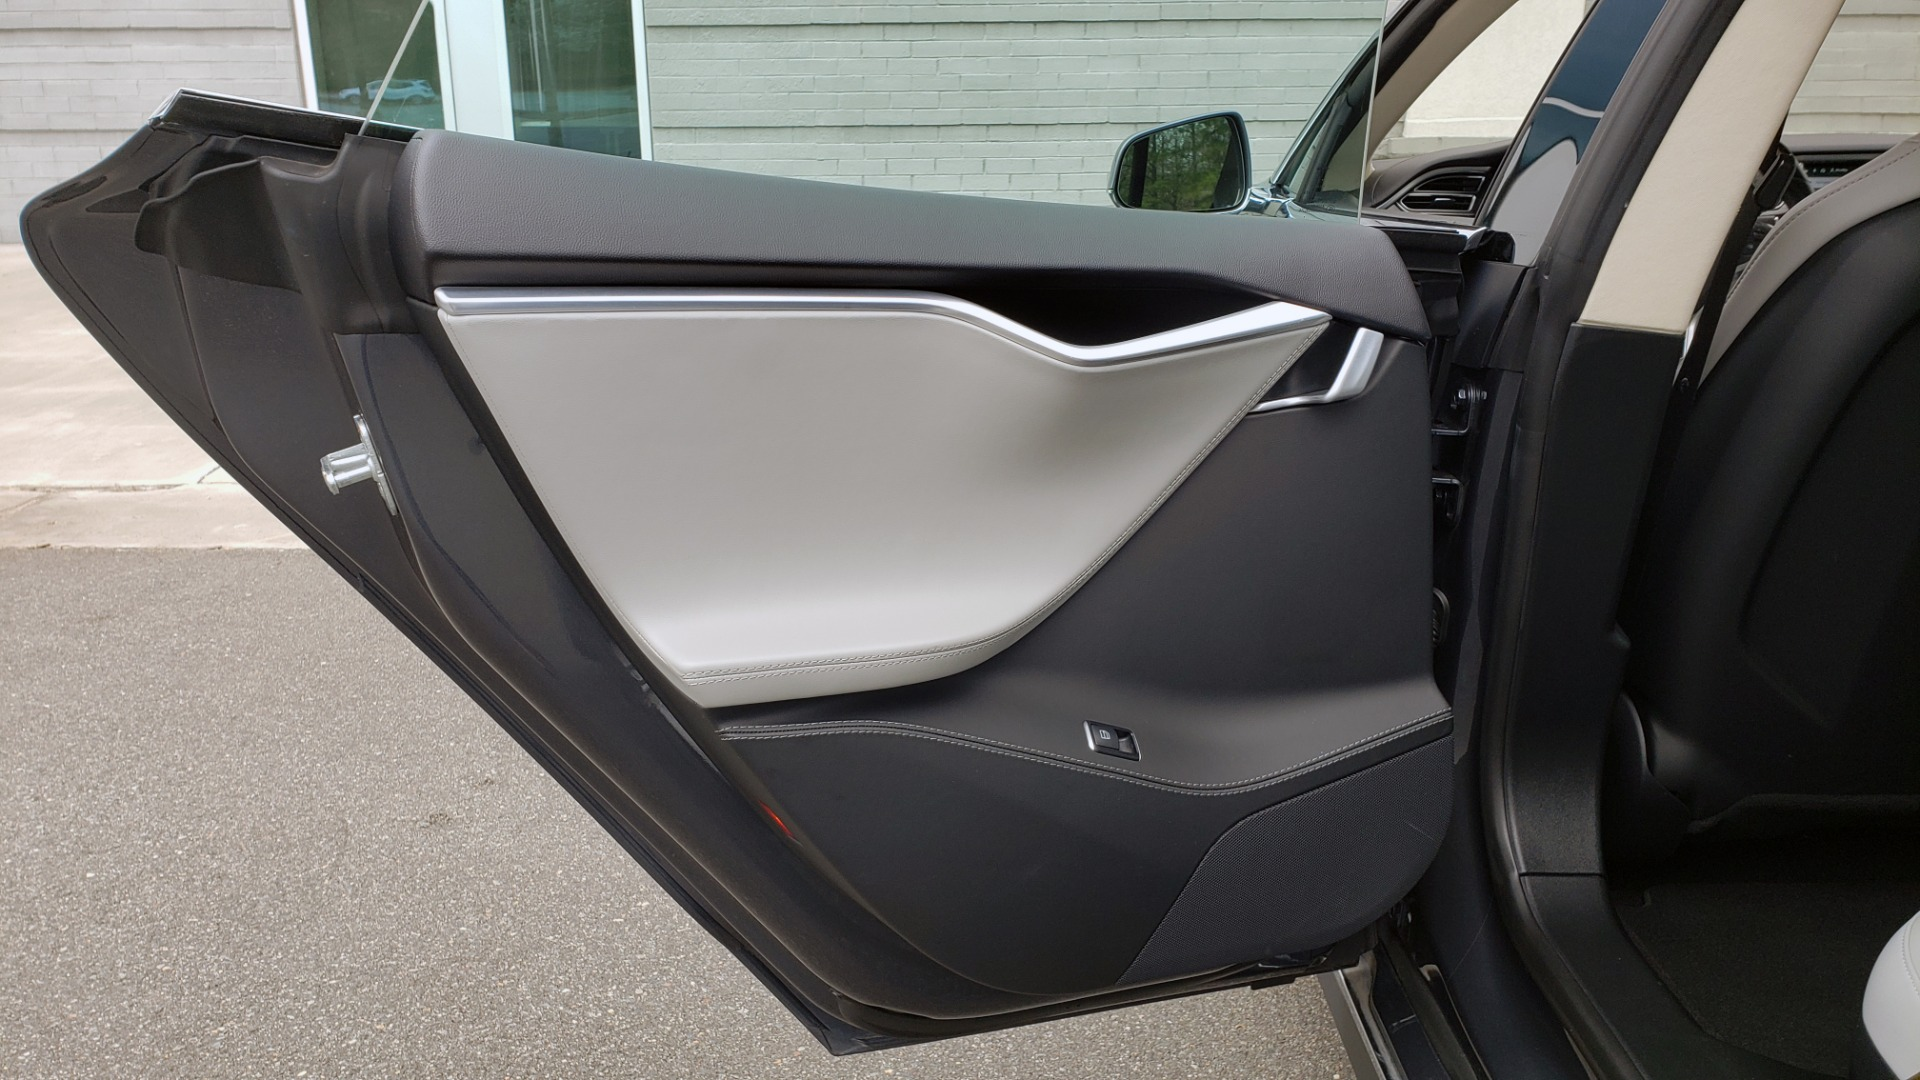 Used 2014 Tesla MODEL S 60 kWh BATTERY / TECH / NAV / SUBZERO / SUNROOF / REARVIEW for sale Sold at Formula Imports in Charlotte NC 28227 50